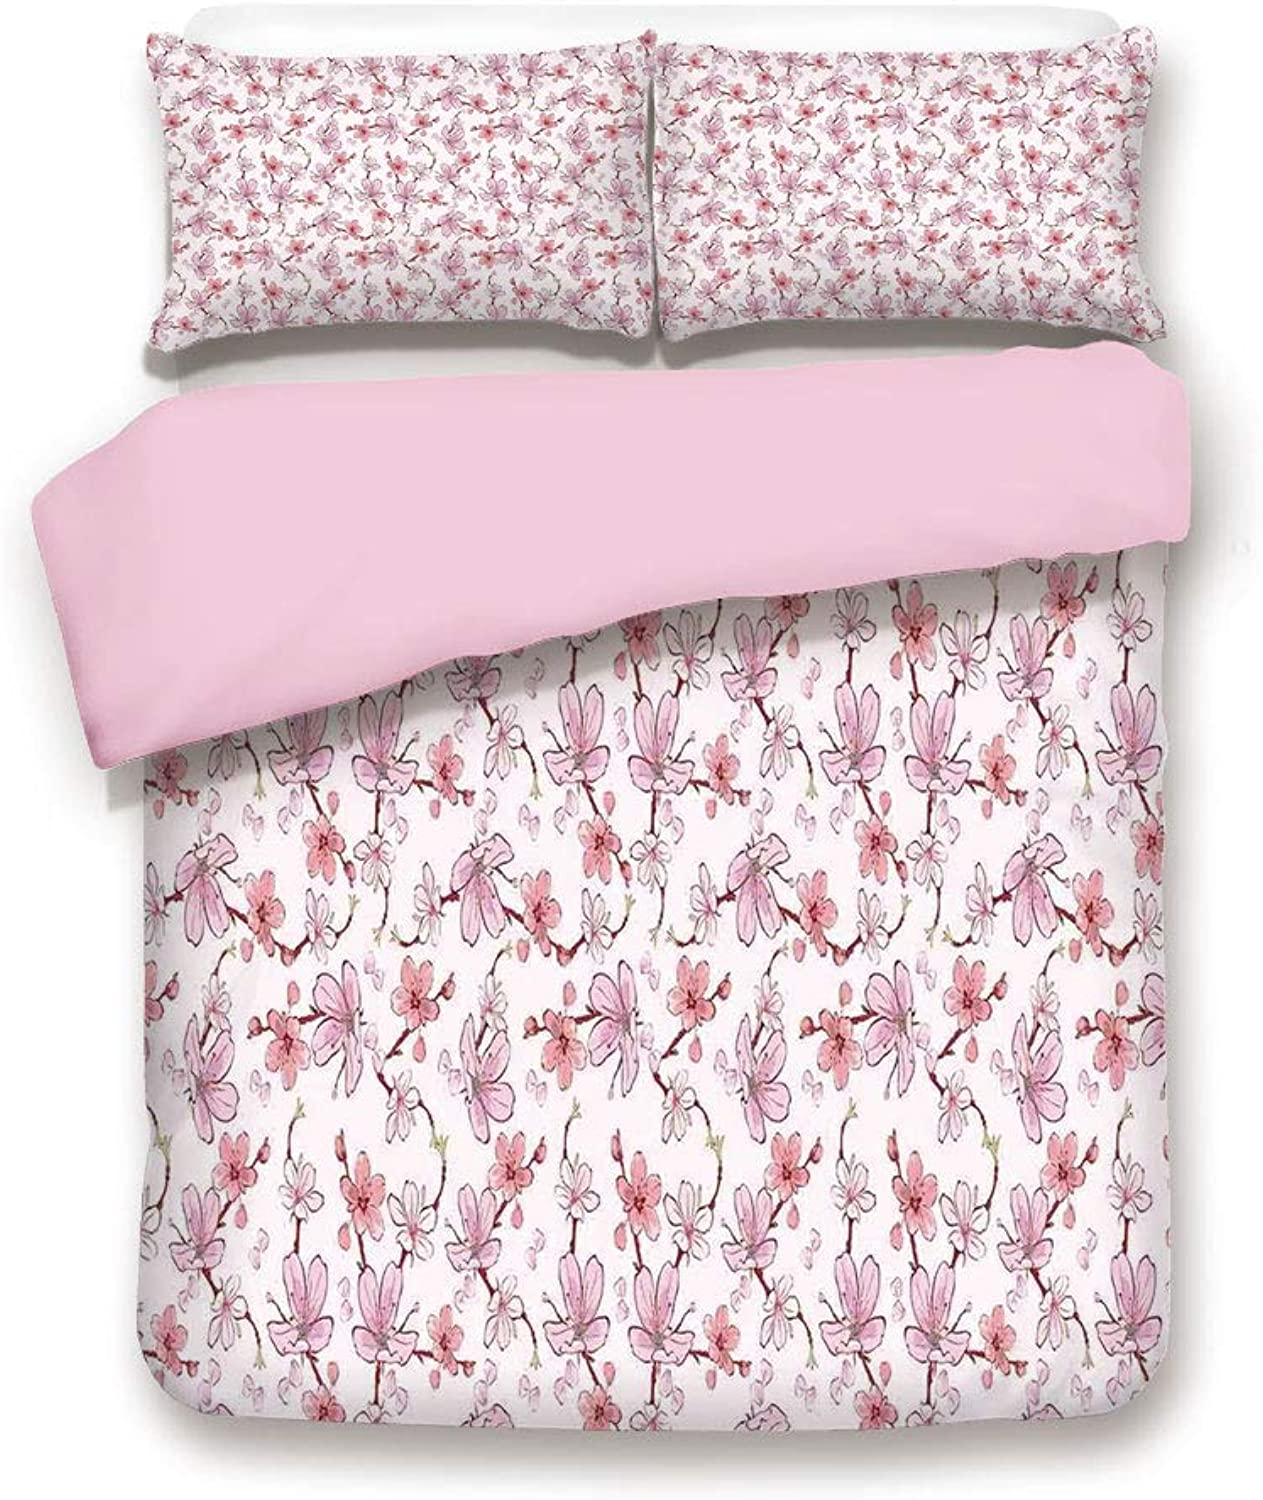 Pink Duvet Cover Set,FULL Size,Cherry Sakura Flowers Romantic Branch Blossom Spring Petal pink Vibrant colord,Decorative 3 Piece Bedding Set with 2 Pillow Sham,Best Gift For Girls Women,Pastel Pink W